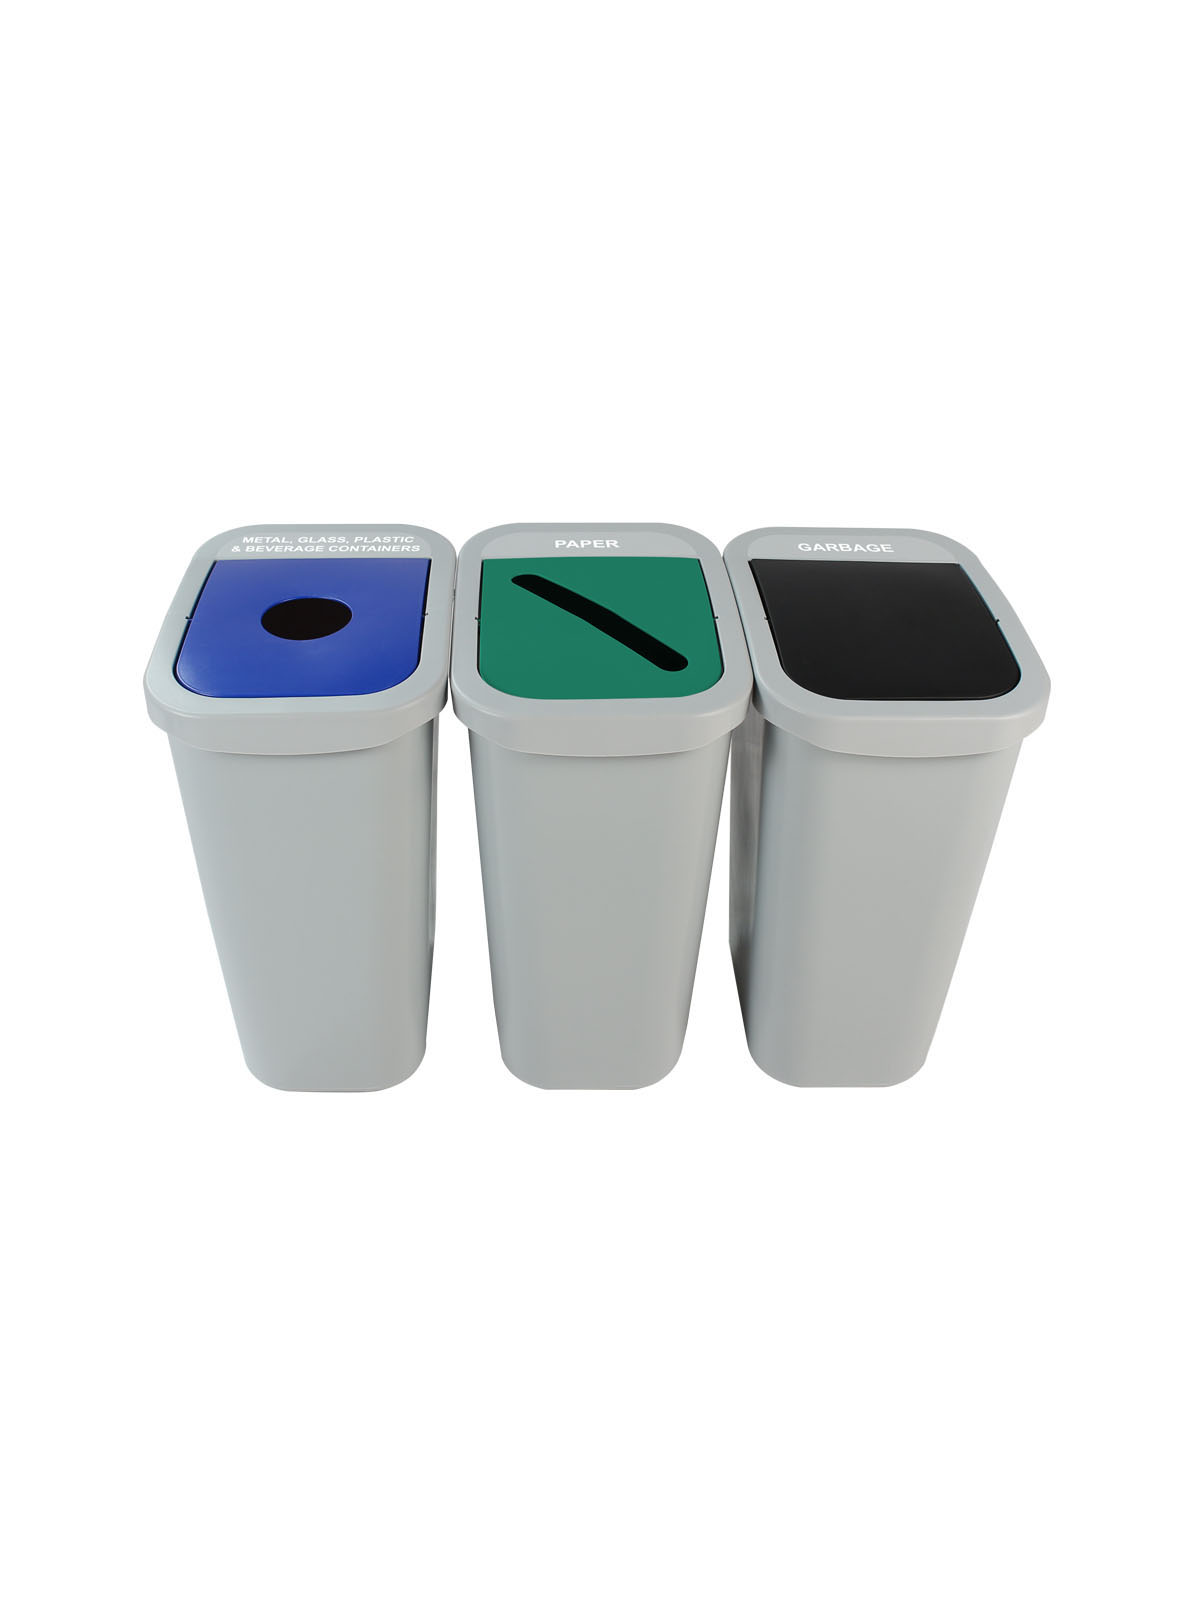 BILLI BOX - Triple - New York City Compliant - Metal, Glass, Plastic & Beverage Containers-Paper-Garbage - Circle-Slot-Swing - Grey-Blue-Green-Black title=